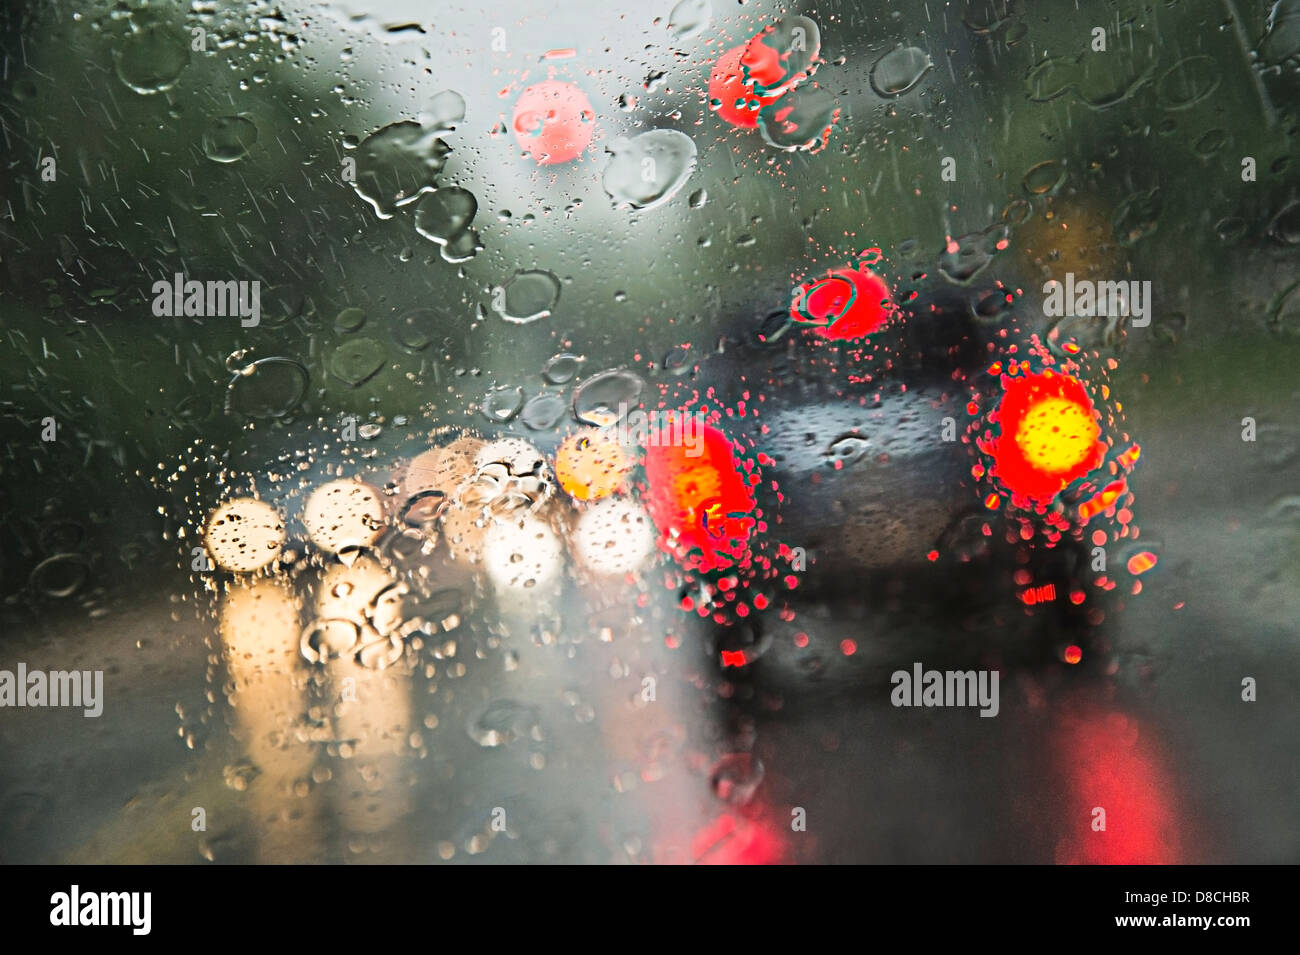 Rain On Windshield With Cars Driving In Rain Storm - Stock Image